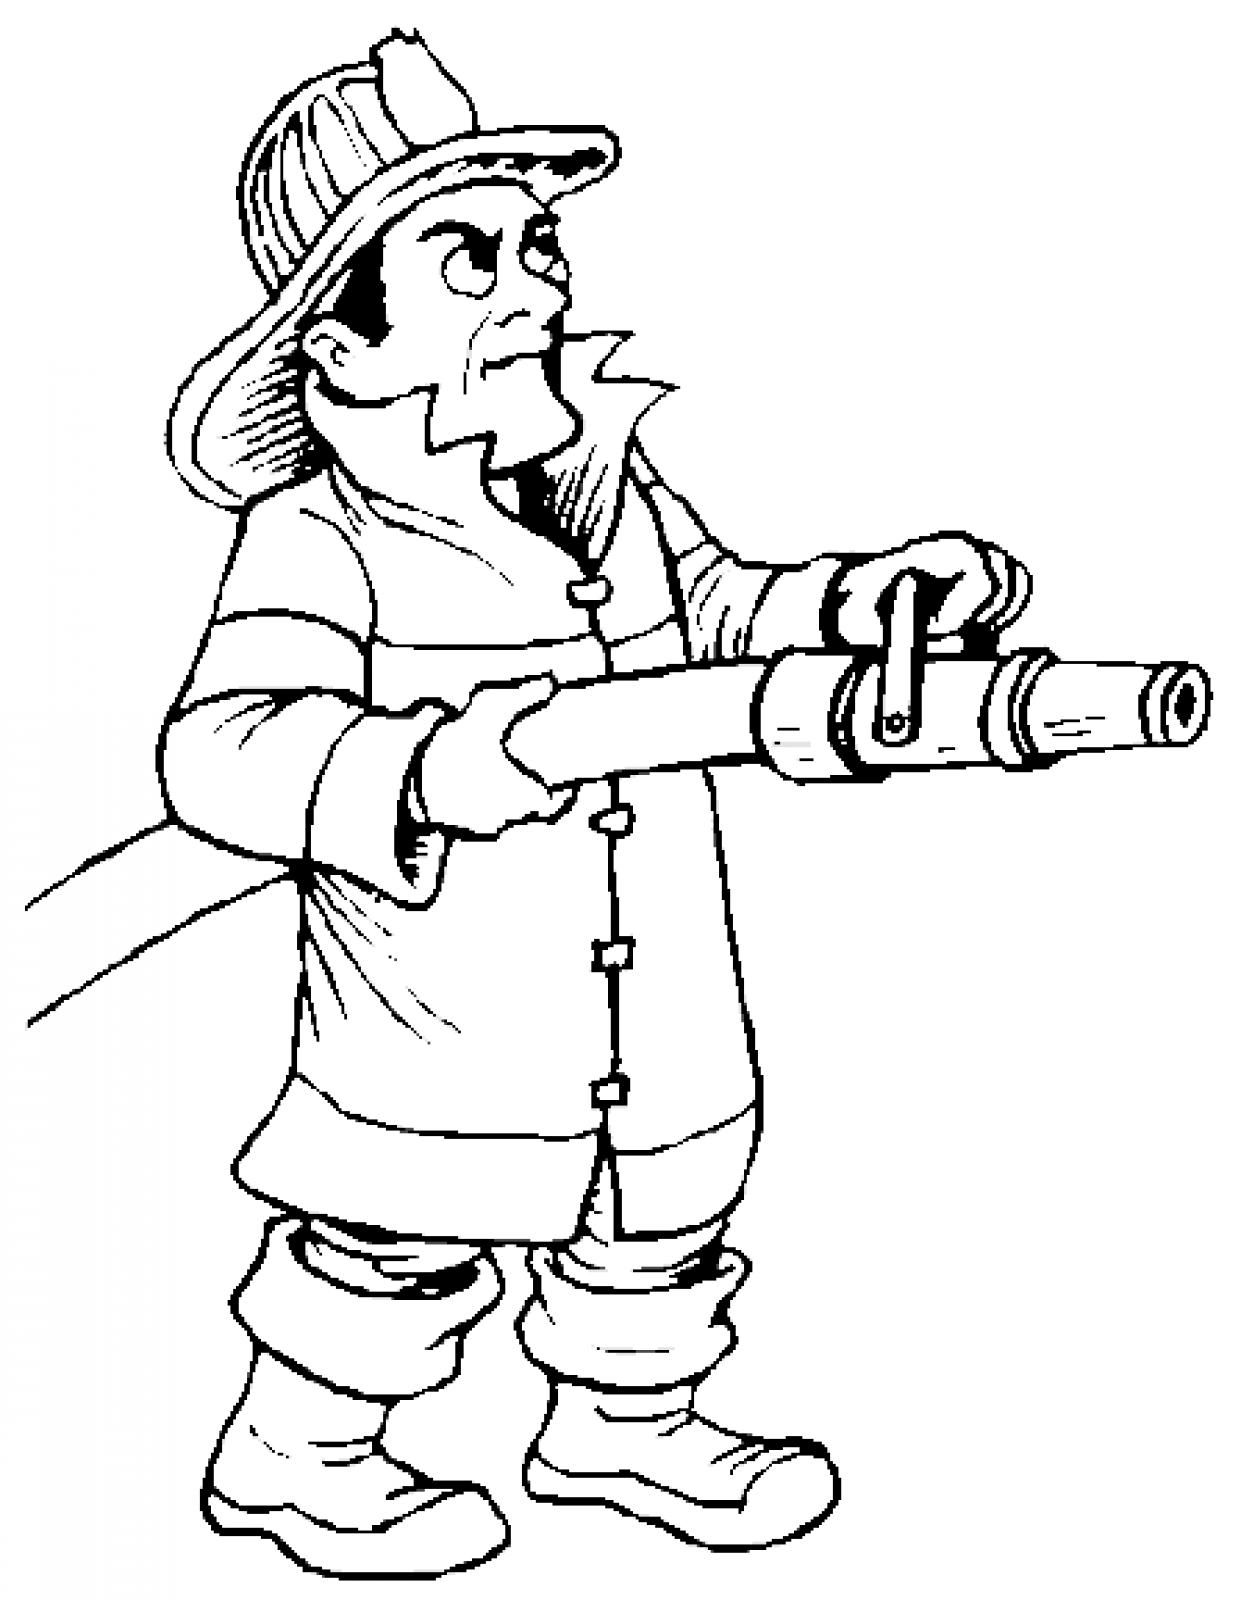 fire man coloring pages - photo#15